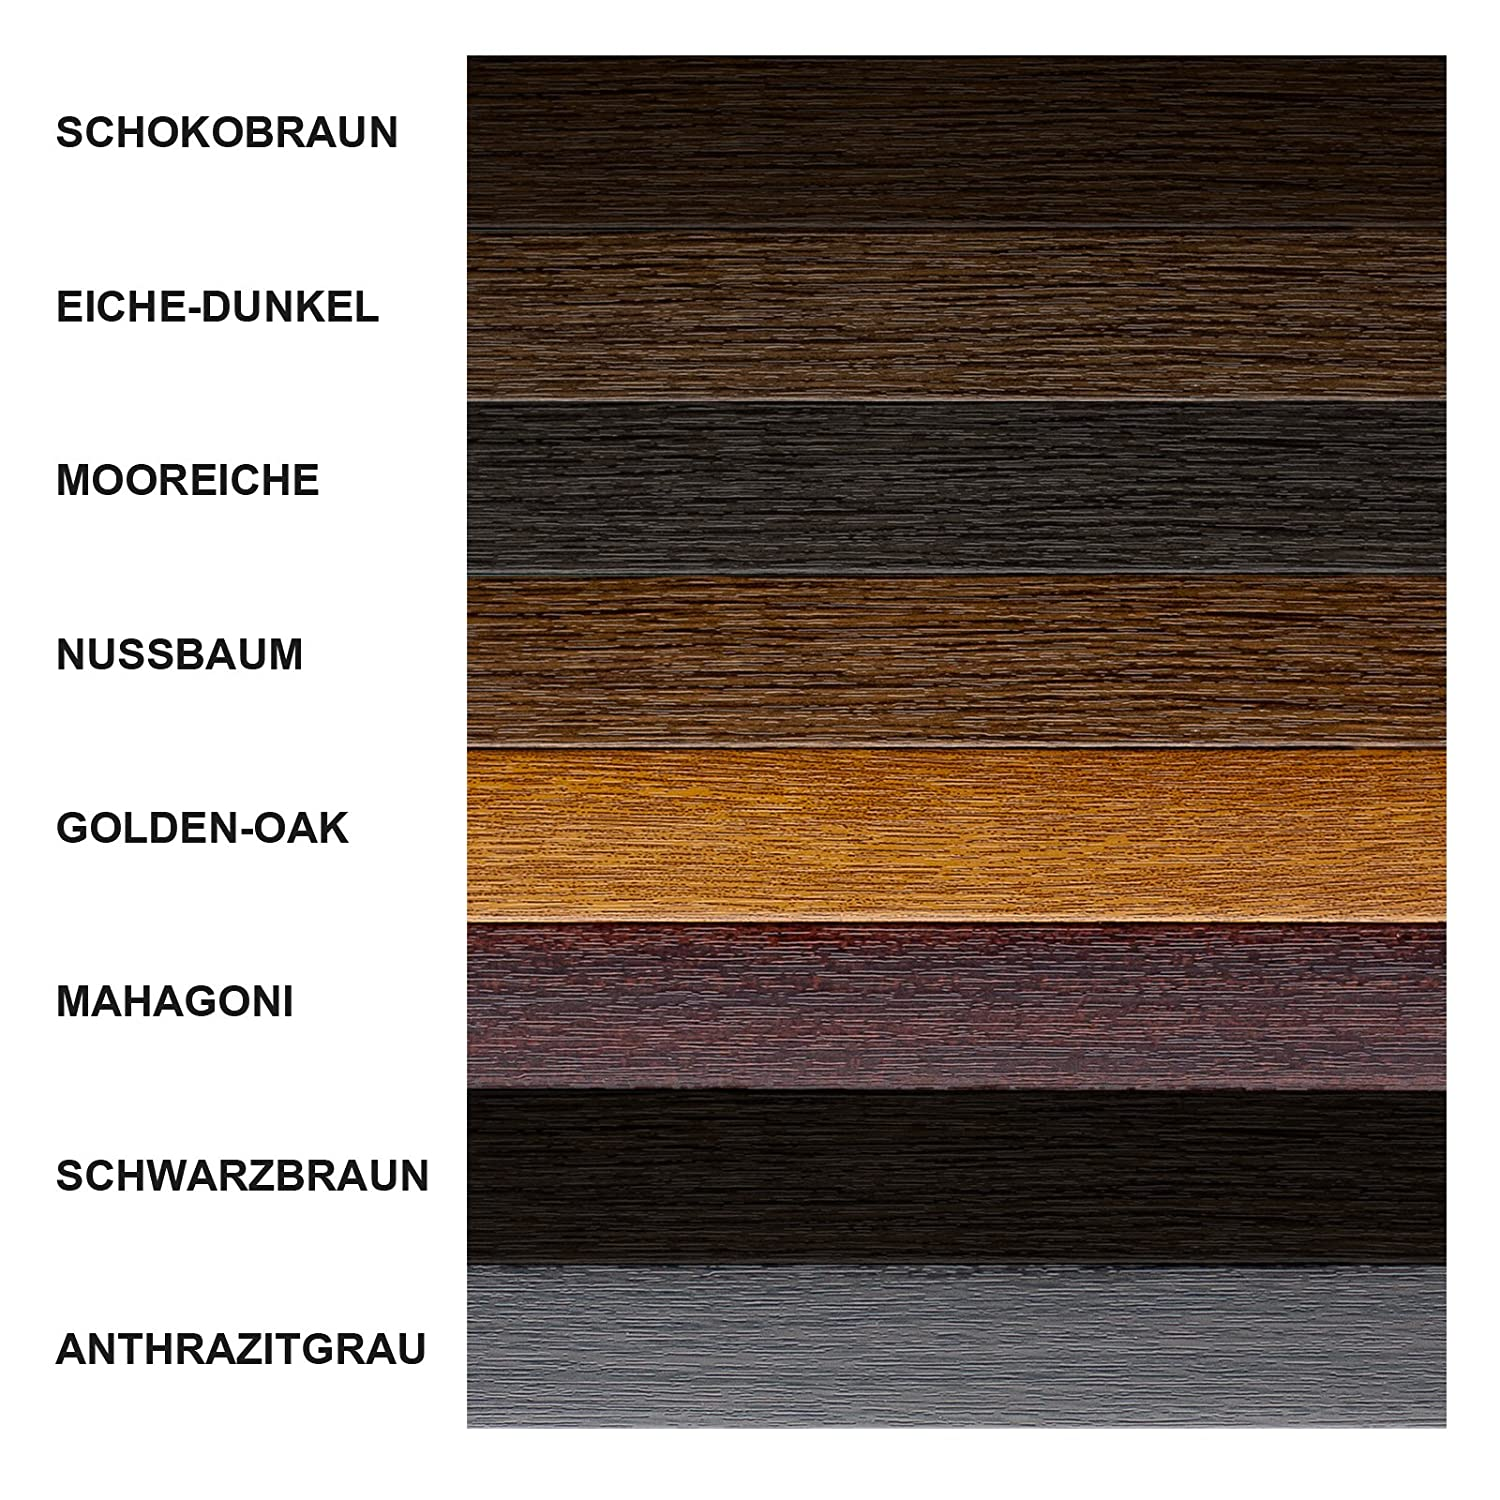 Fensterleisten Flachleisten in grau 3,49/€ //m Fensterleiste Flachleiste Abdeckleiste 30mm H/öhe dunkelbraun braun 10 m anthrazit golden-oak MIT LIPPE 1 m bis 50 m Made in Germany